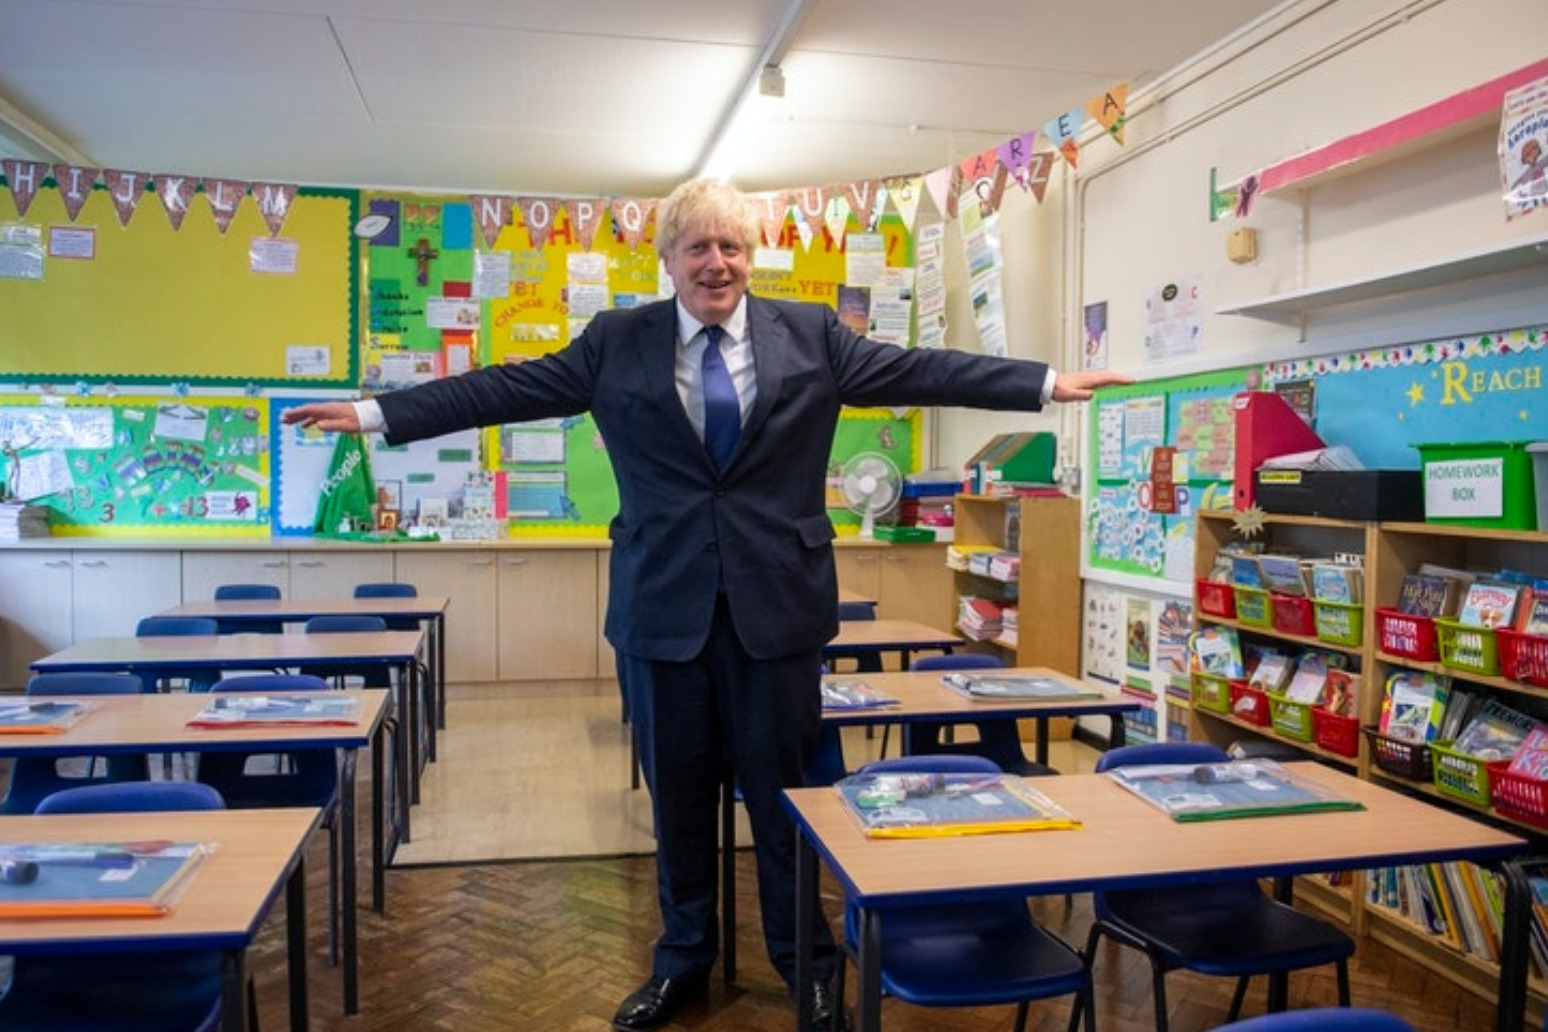 Johnson urges parents to send children back to school despite coronavirus